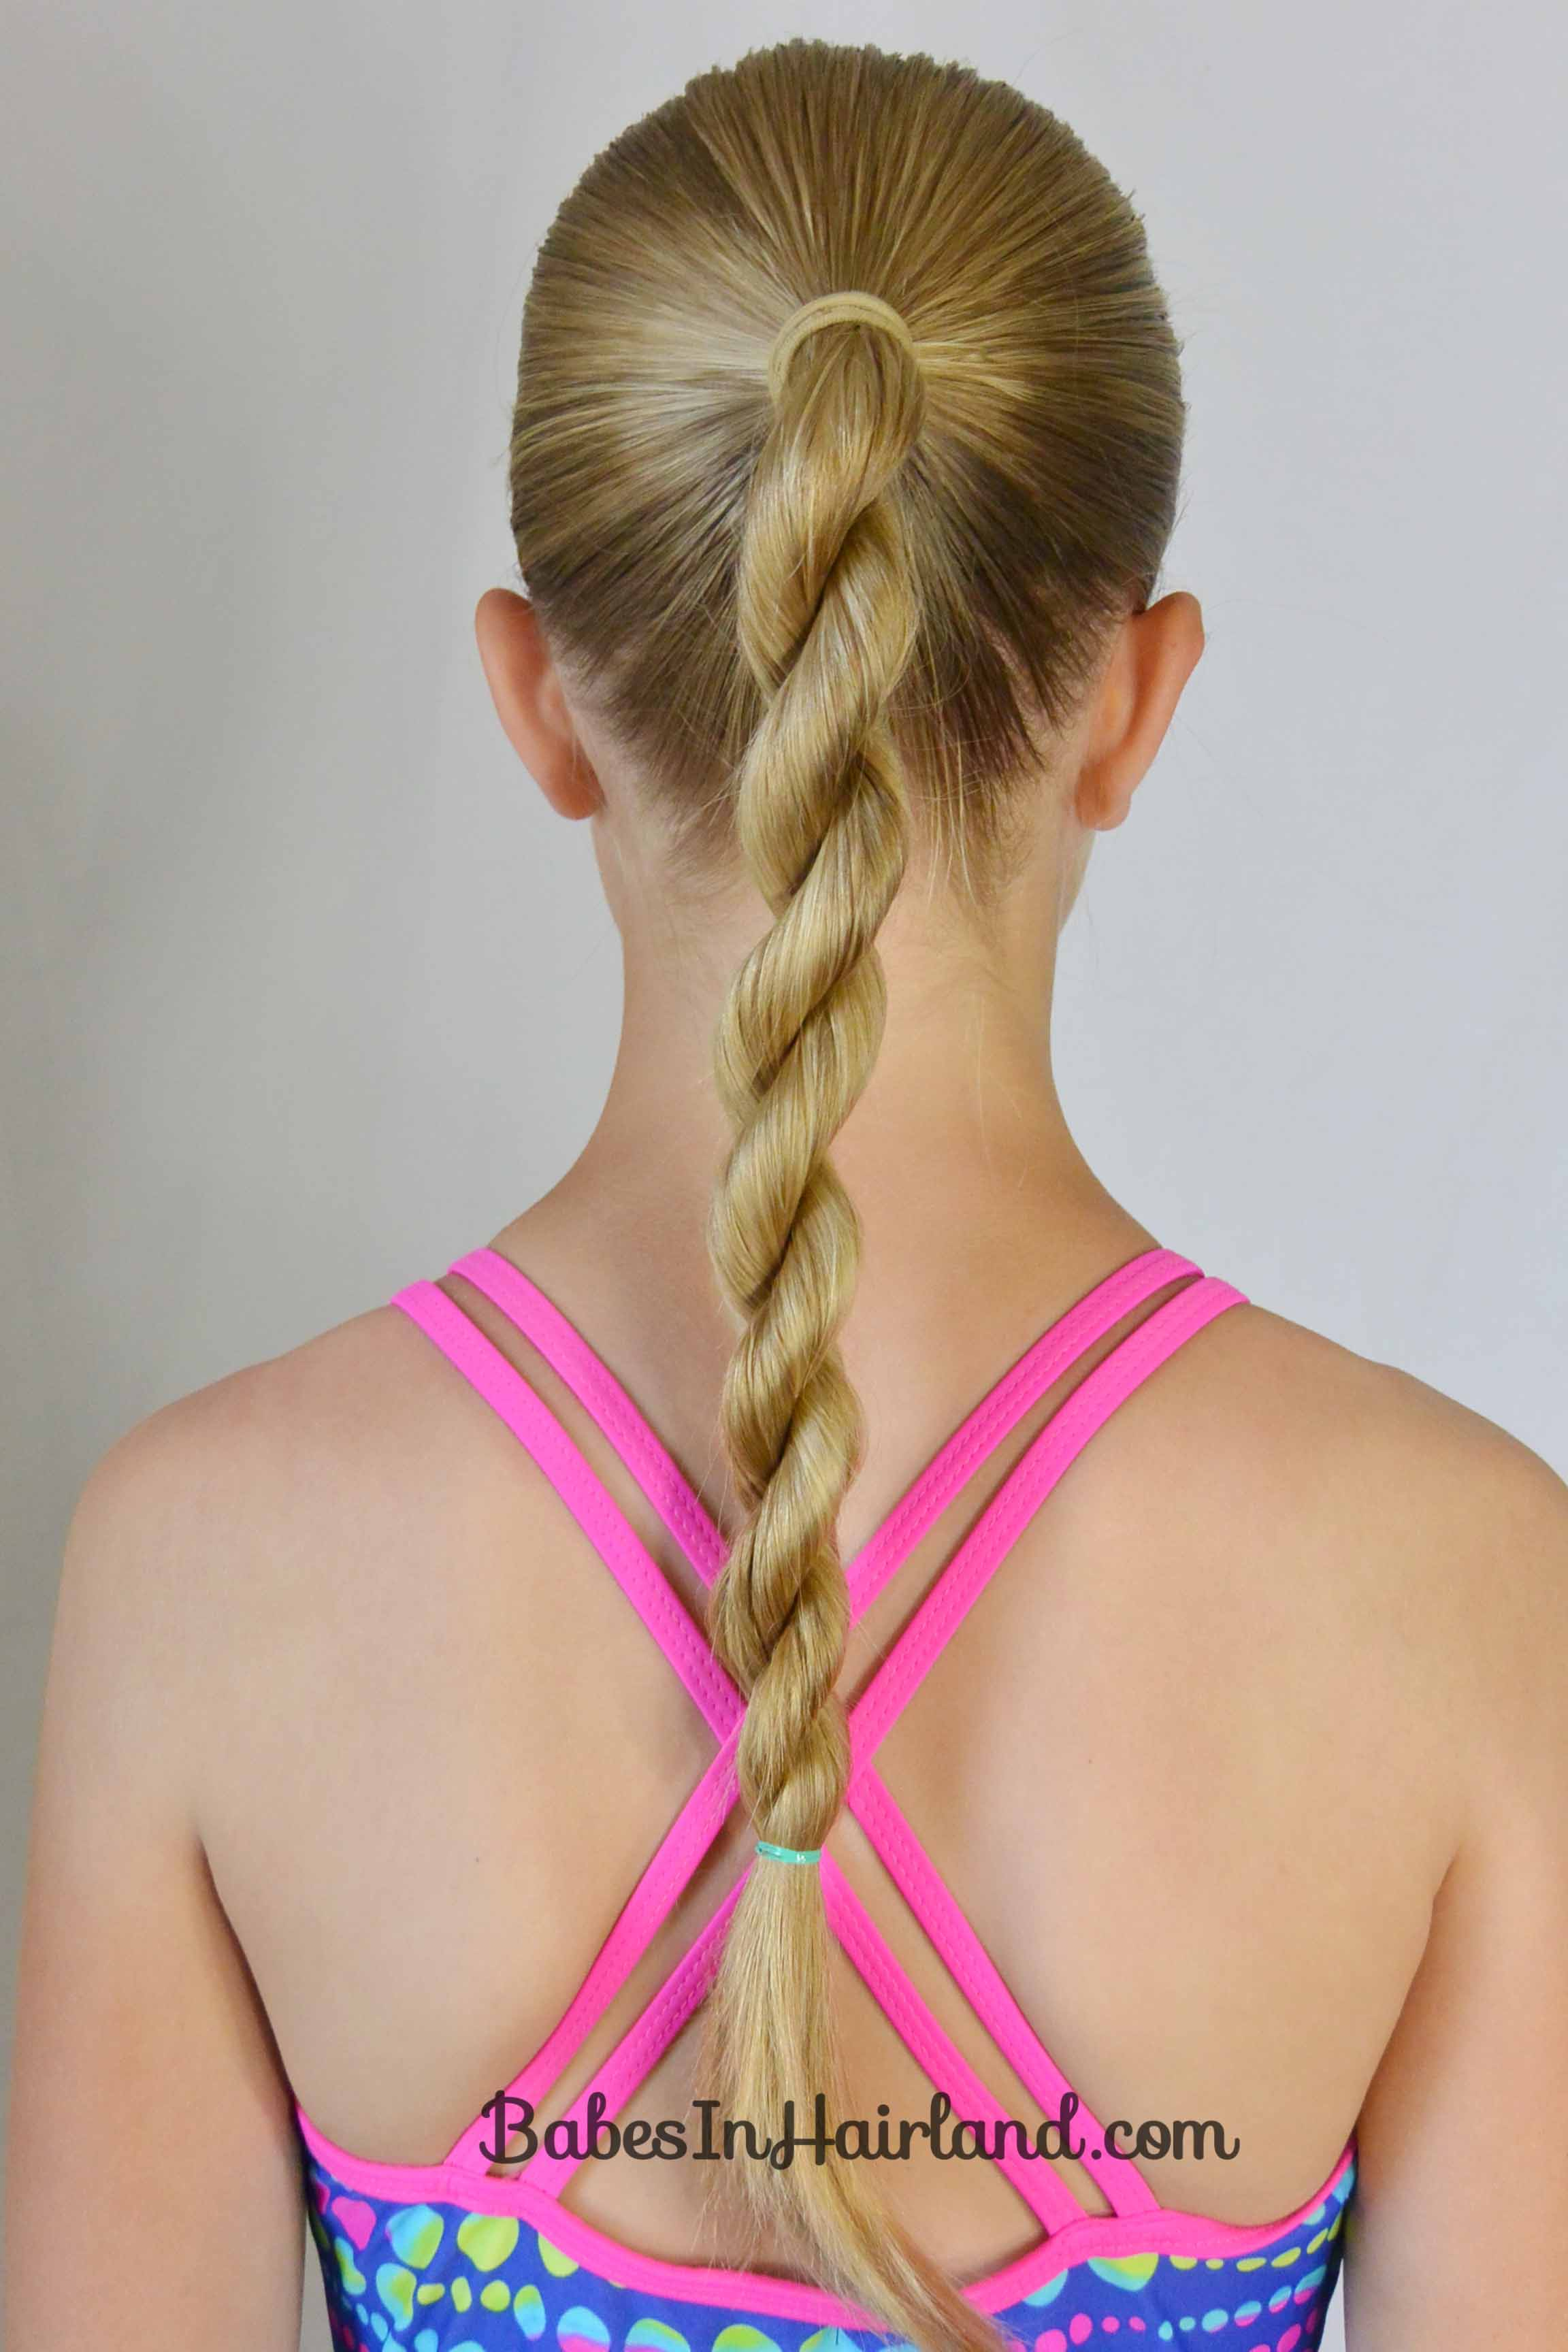 No Fuss Hairstyles For Summer Or The Pool From Babesinhairland Com